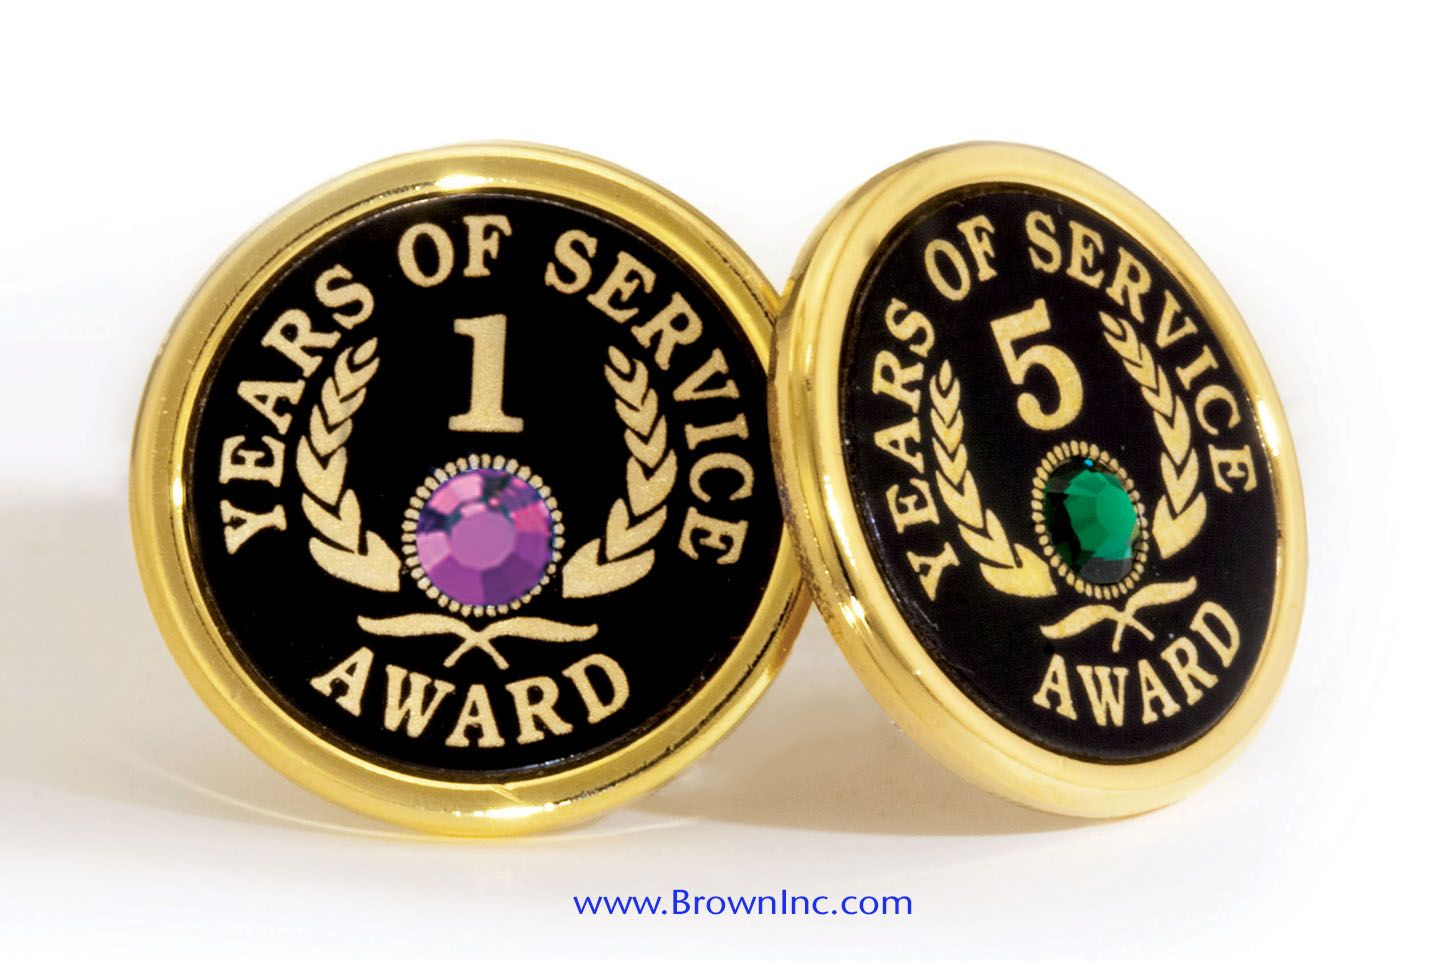 Custom Years of Service Pins provide individual recognition